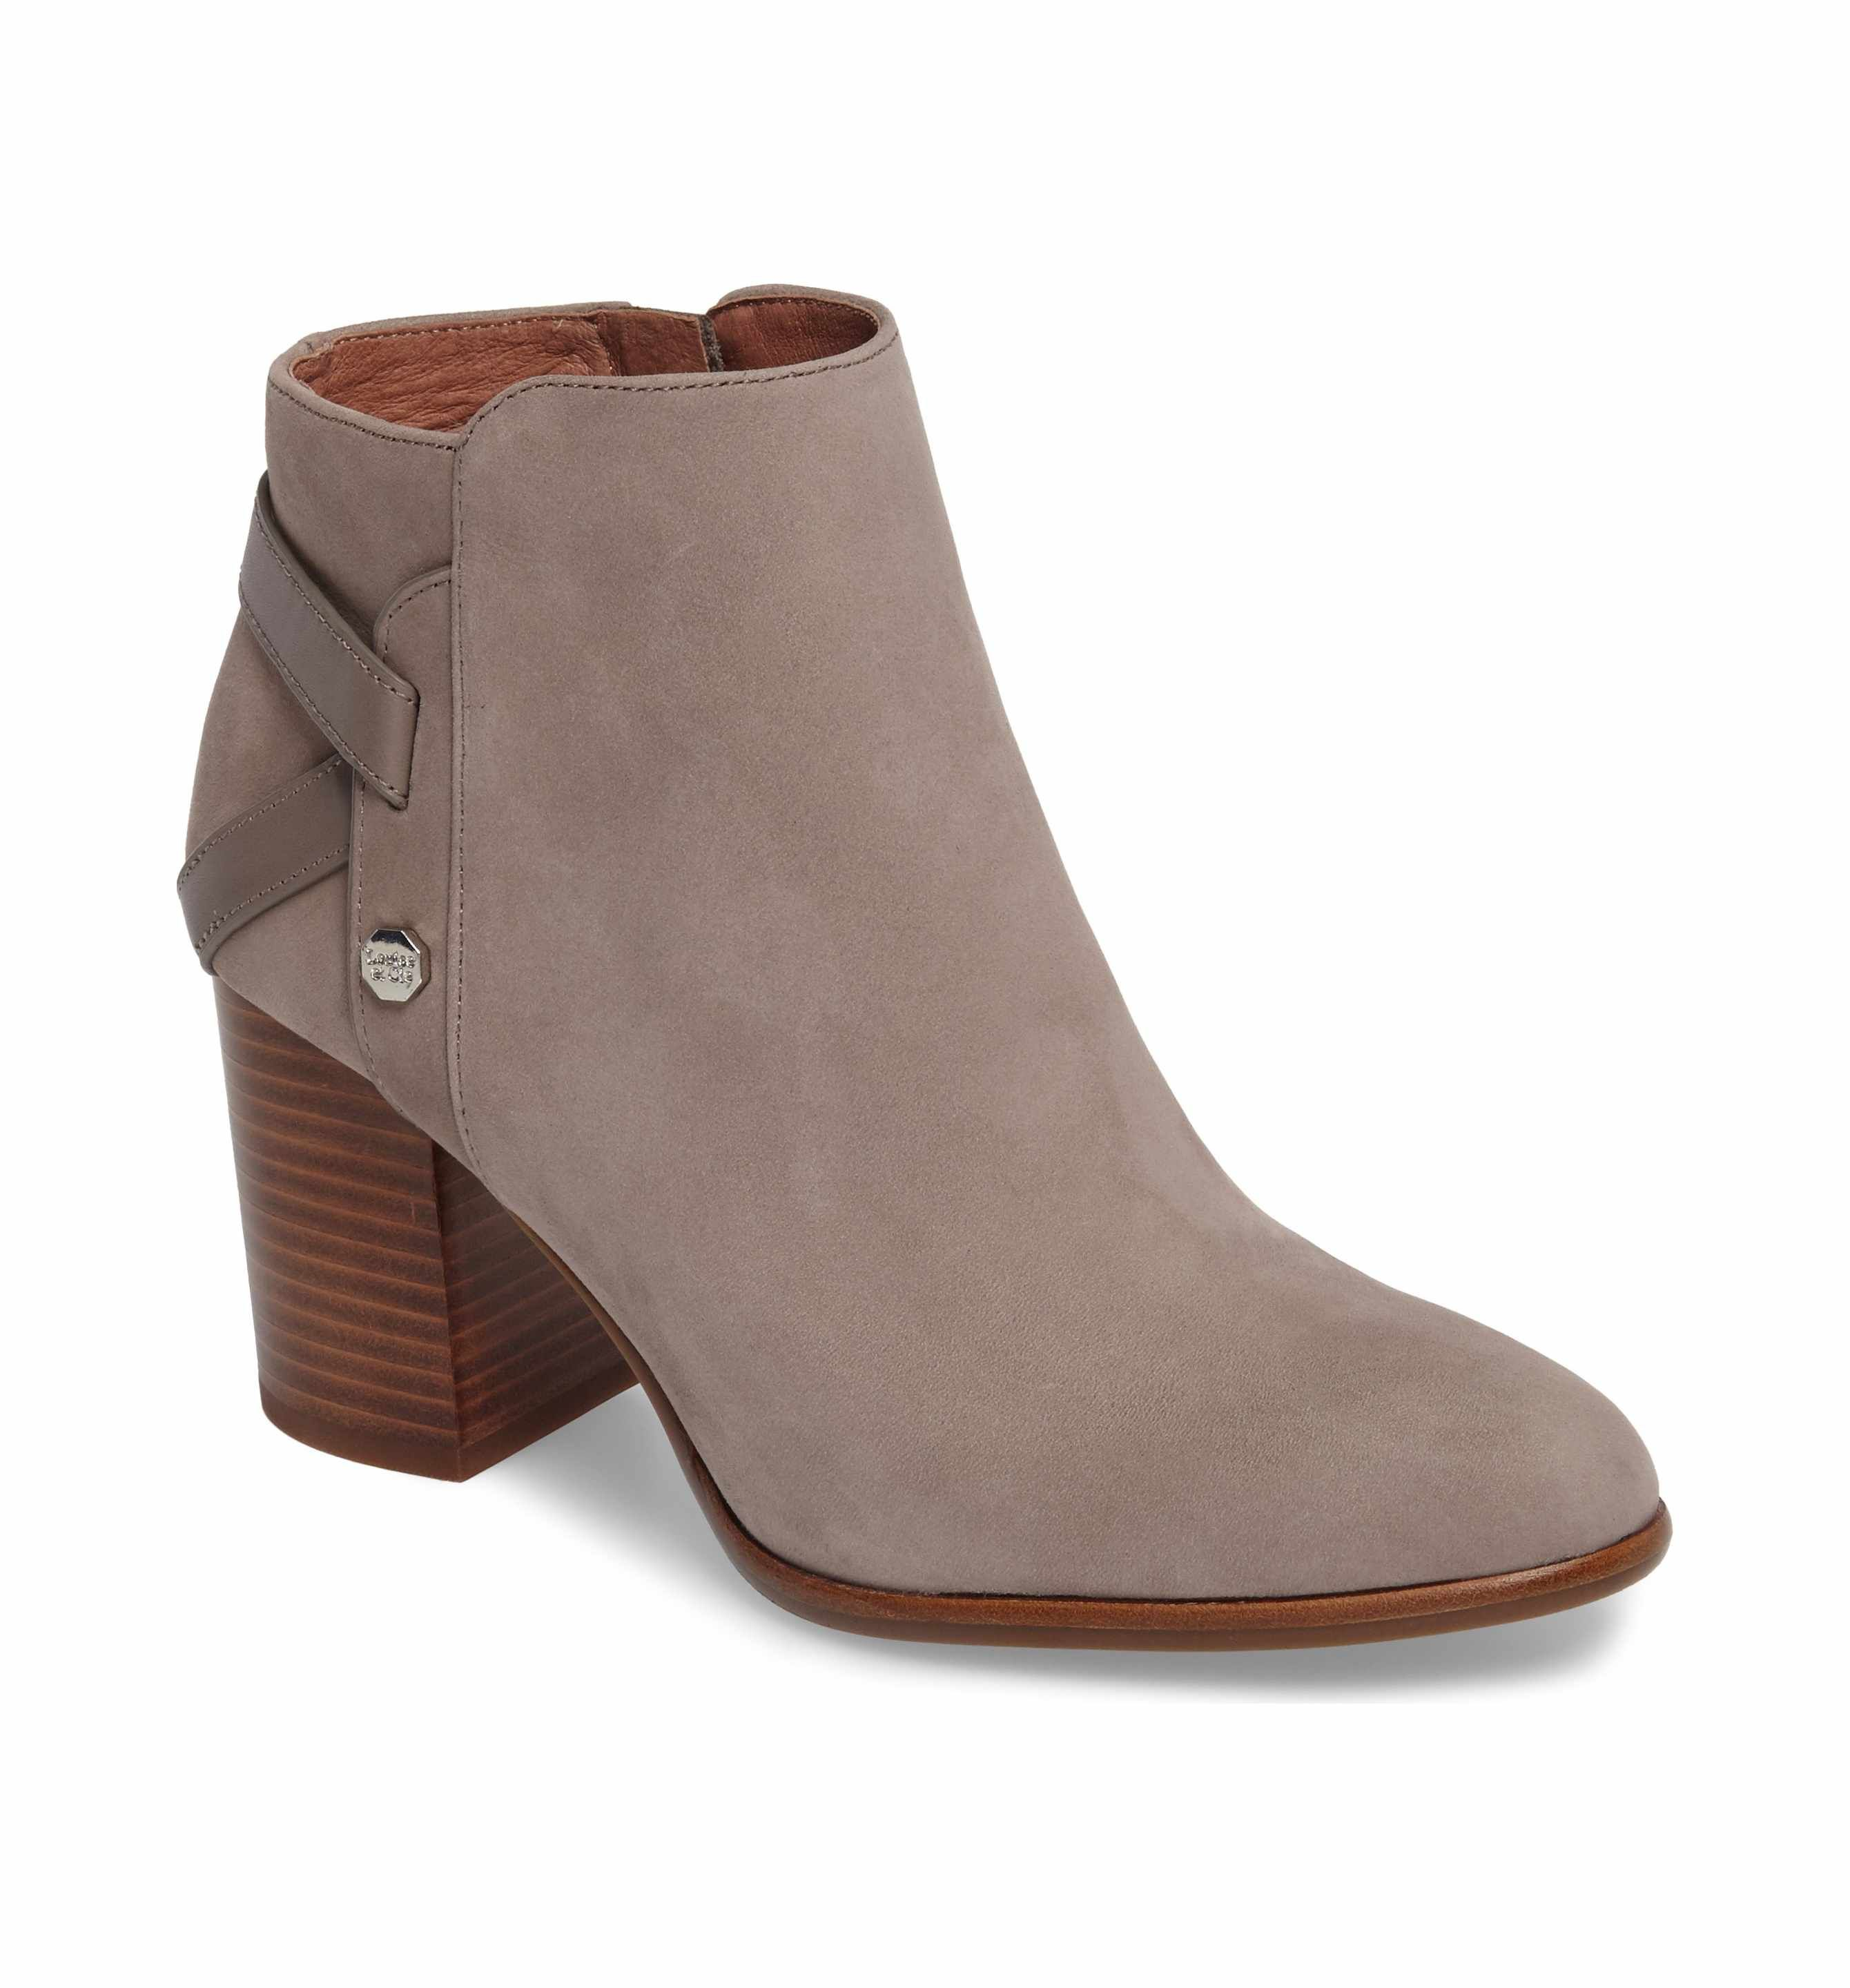 Zanara Bootie | Smooth leather, Nordstrom and Clothing accessories